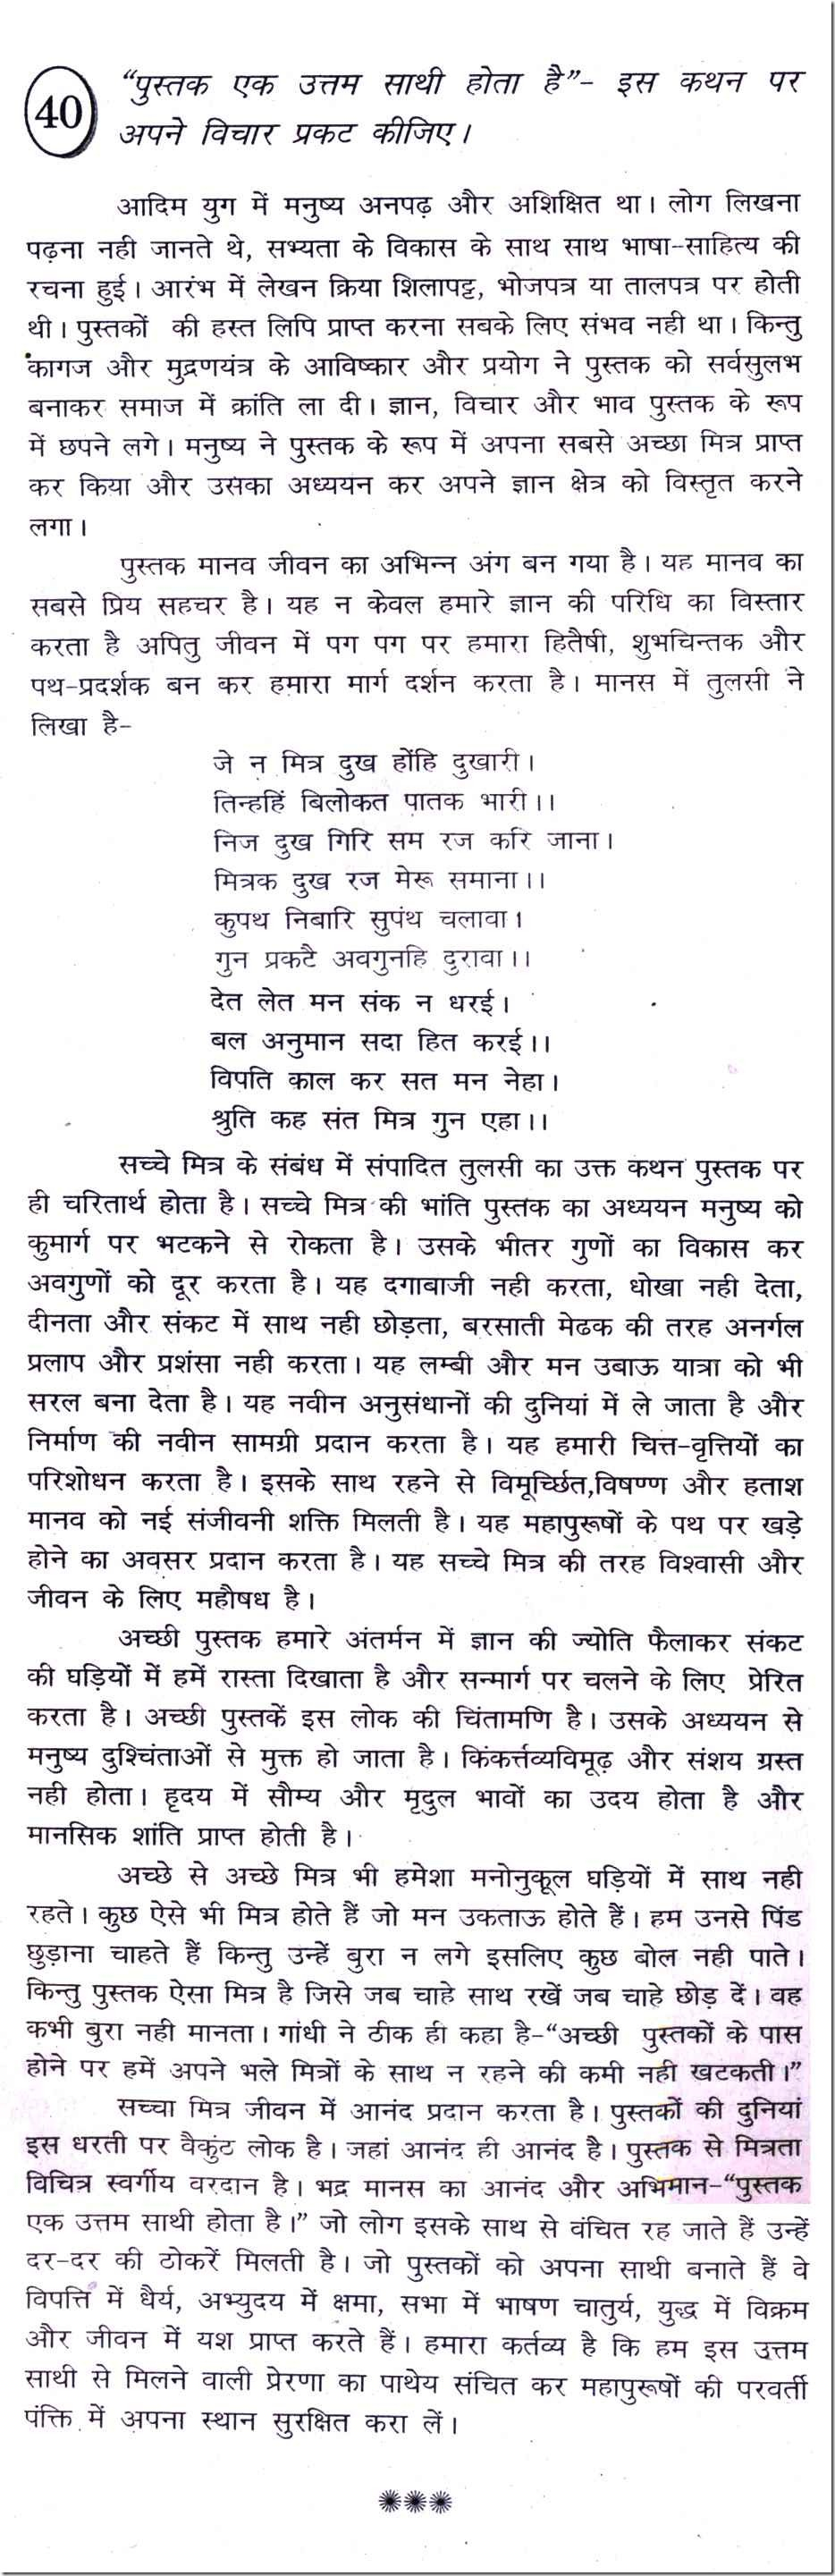 essay in hindi Volleyball essay in hindi - kazzatua.com Trip to delhi ...